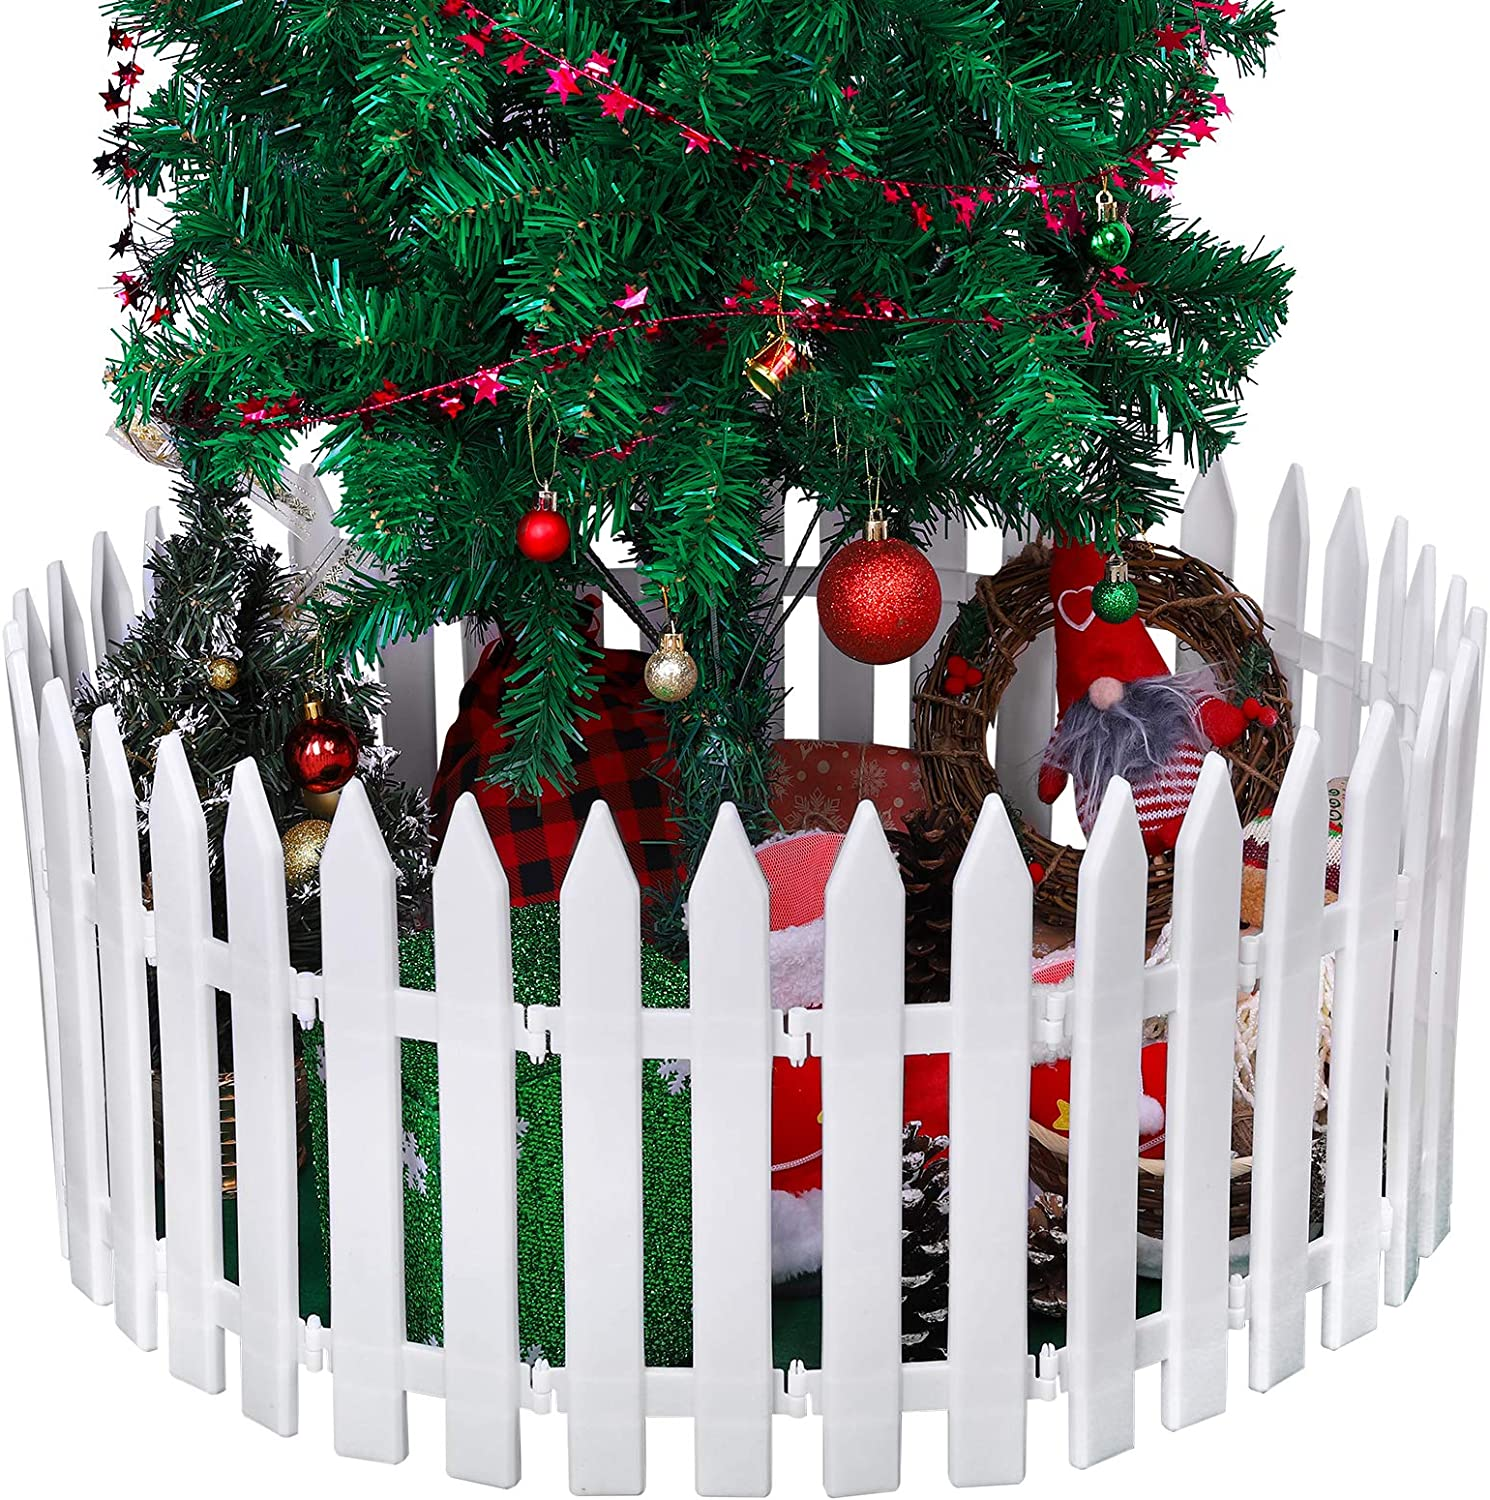 URATOT 30 Pieces Thick White Plastic Picket Fence Christmas Tree Fences Mini Fence Decoration for Christmas Wedding Party Garden Home, 12 Inches